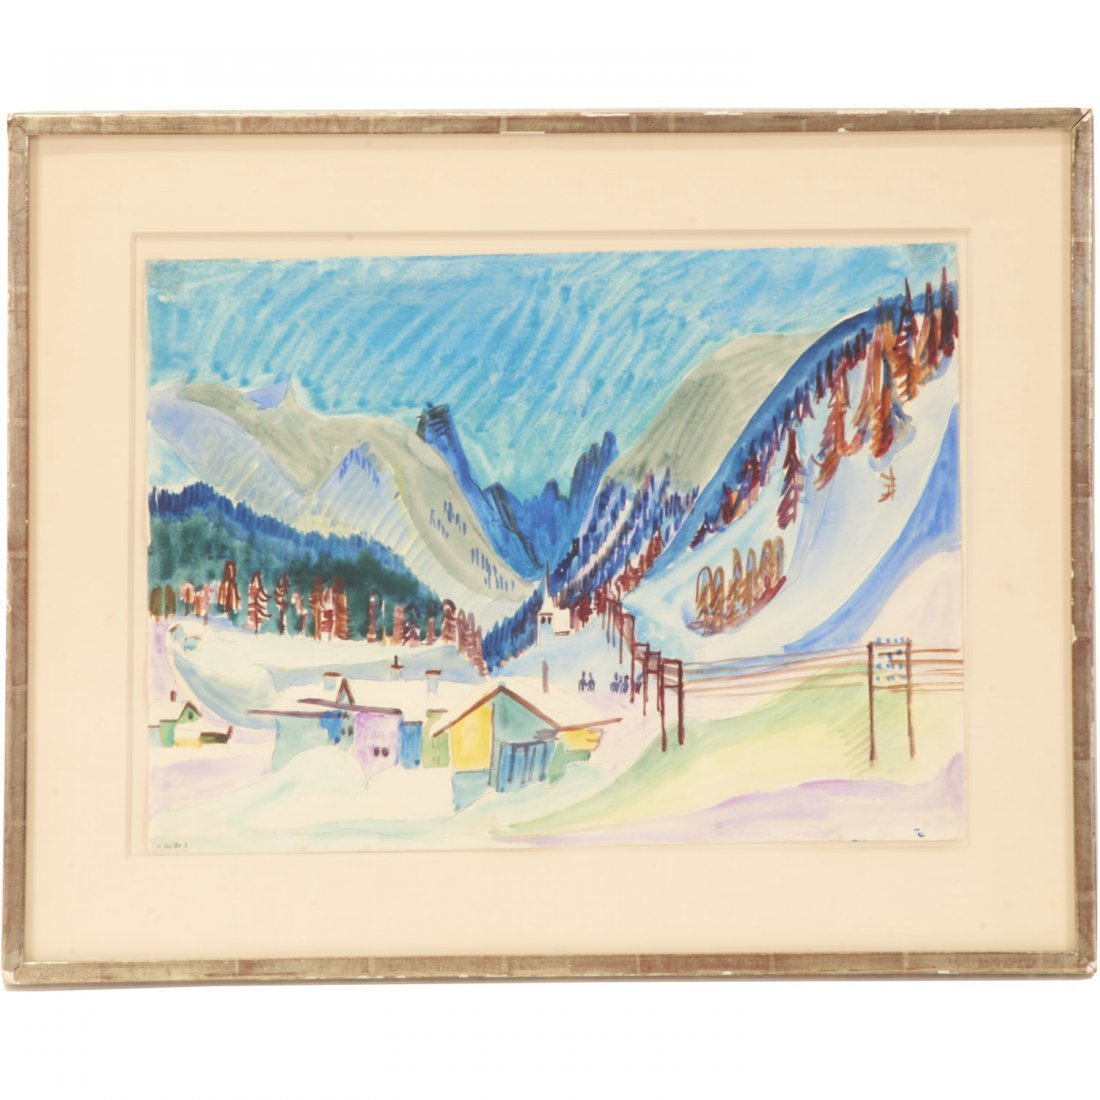 Ernst Ludwig Kirchner, watercolor painting